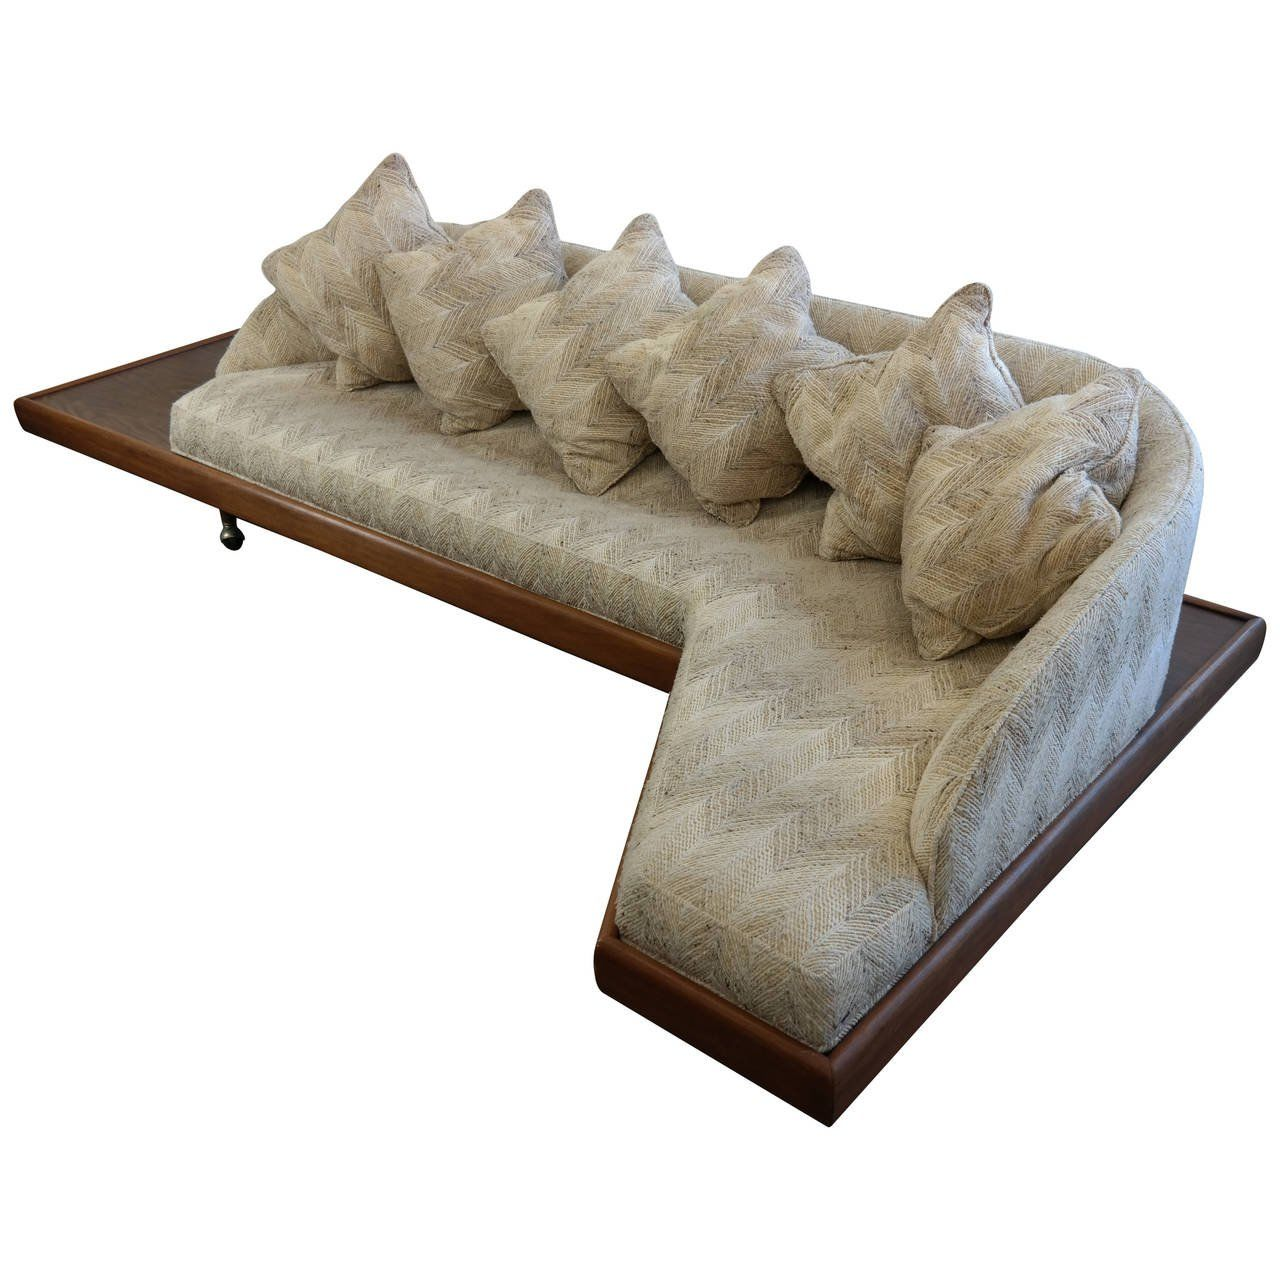 top adrian pearsall sofa concept-Best Of Adrian Pearsall sofa Wallpaper